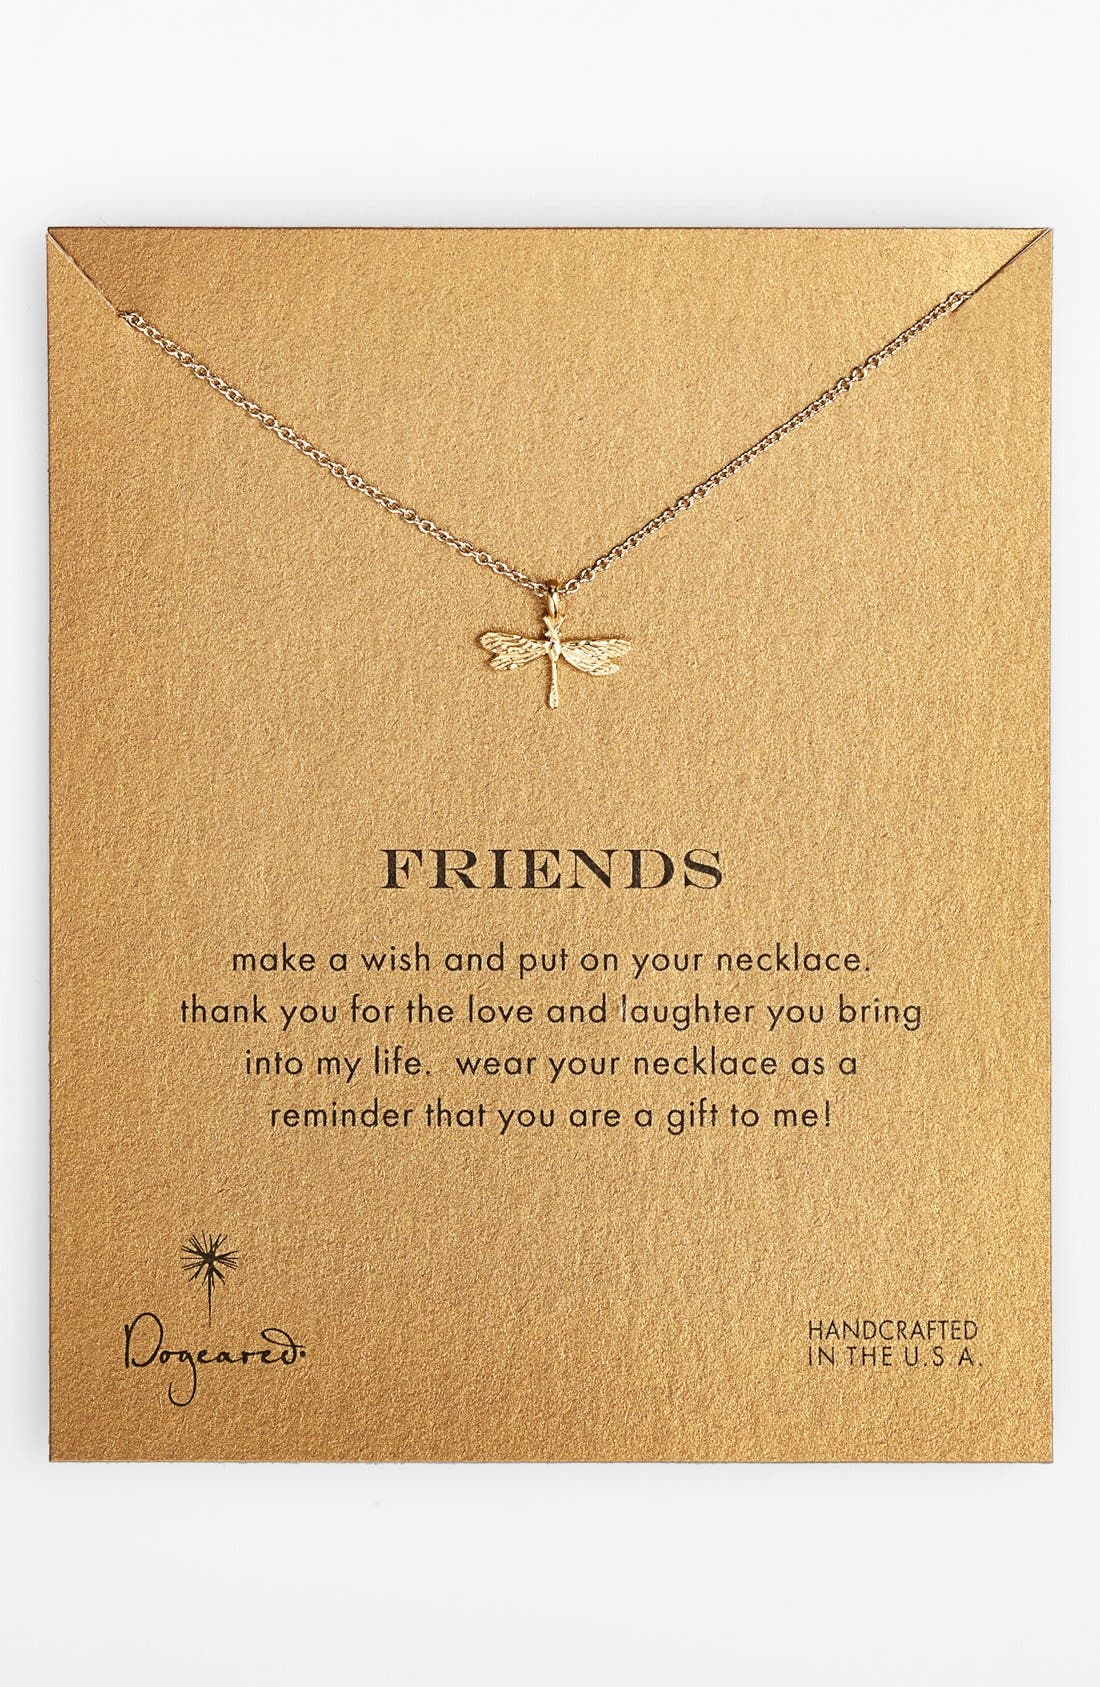 Alternate Image 1 Selected - Dogeared 'Reminder - Friends' Boxed Dragonfly Pendant Necklace